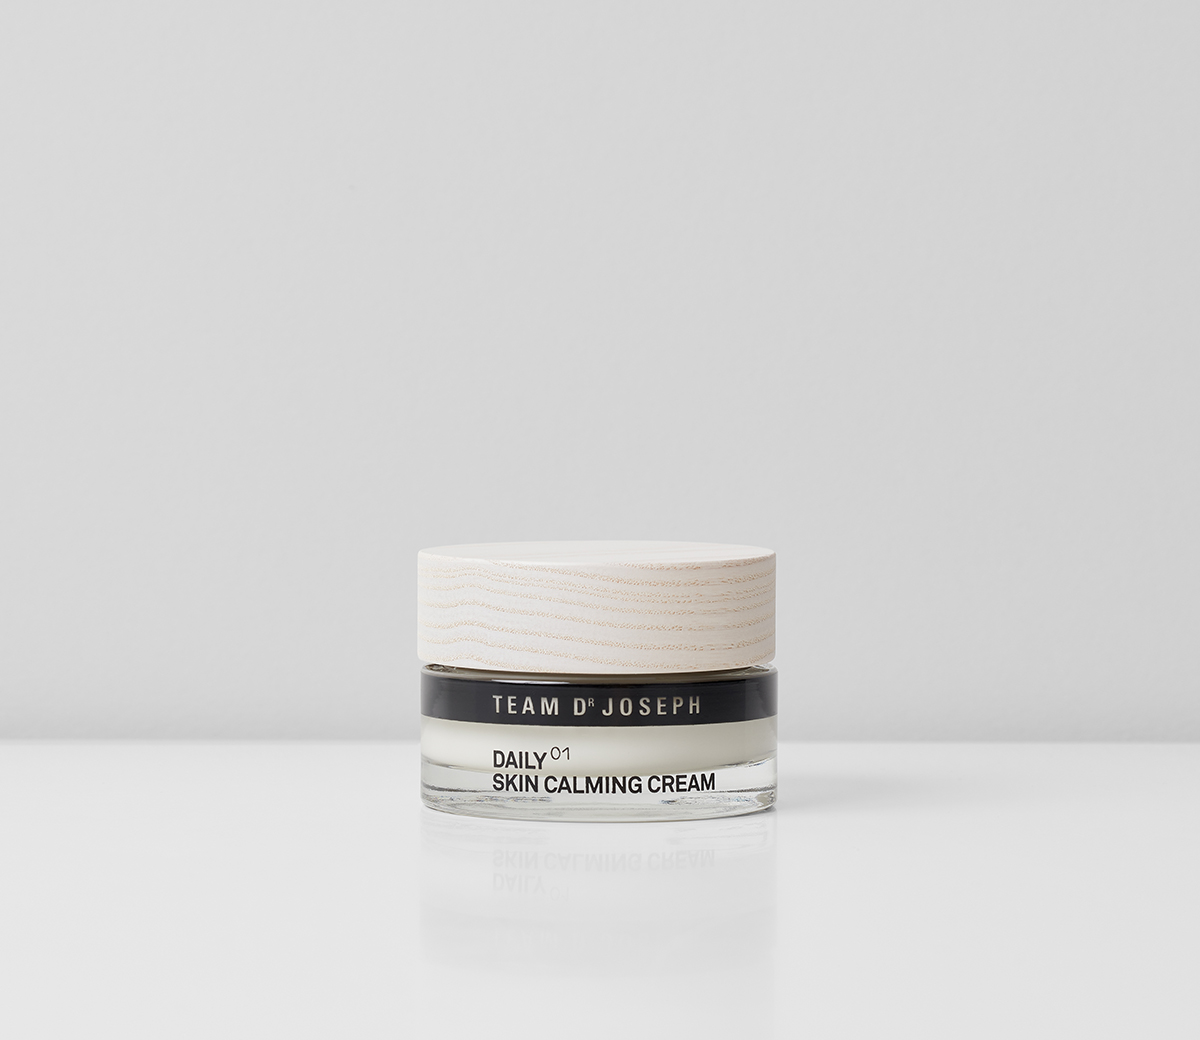 Daily Skin Calming Cream, 50 ml Soothing and protecting face cream